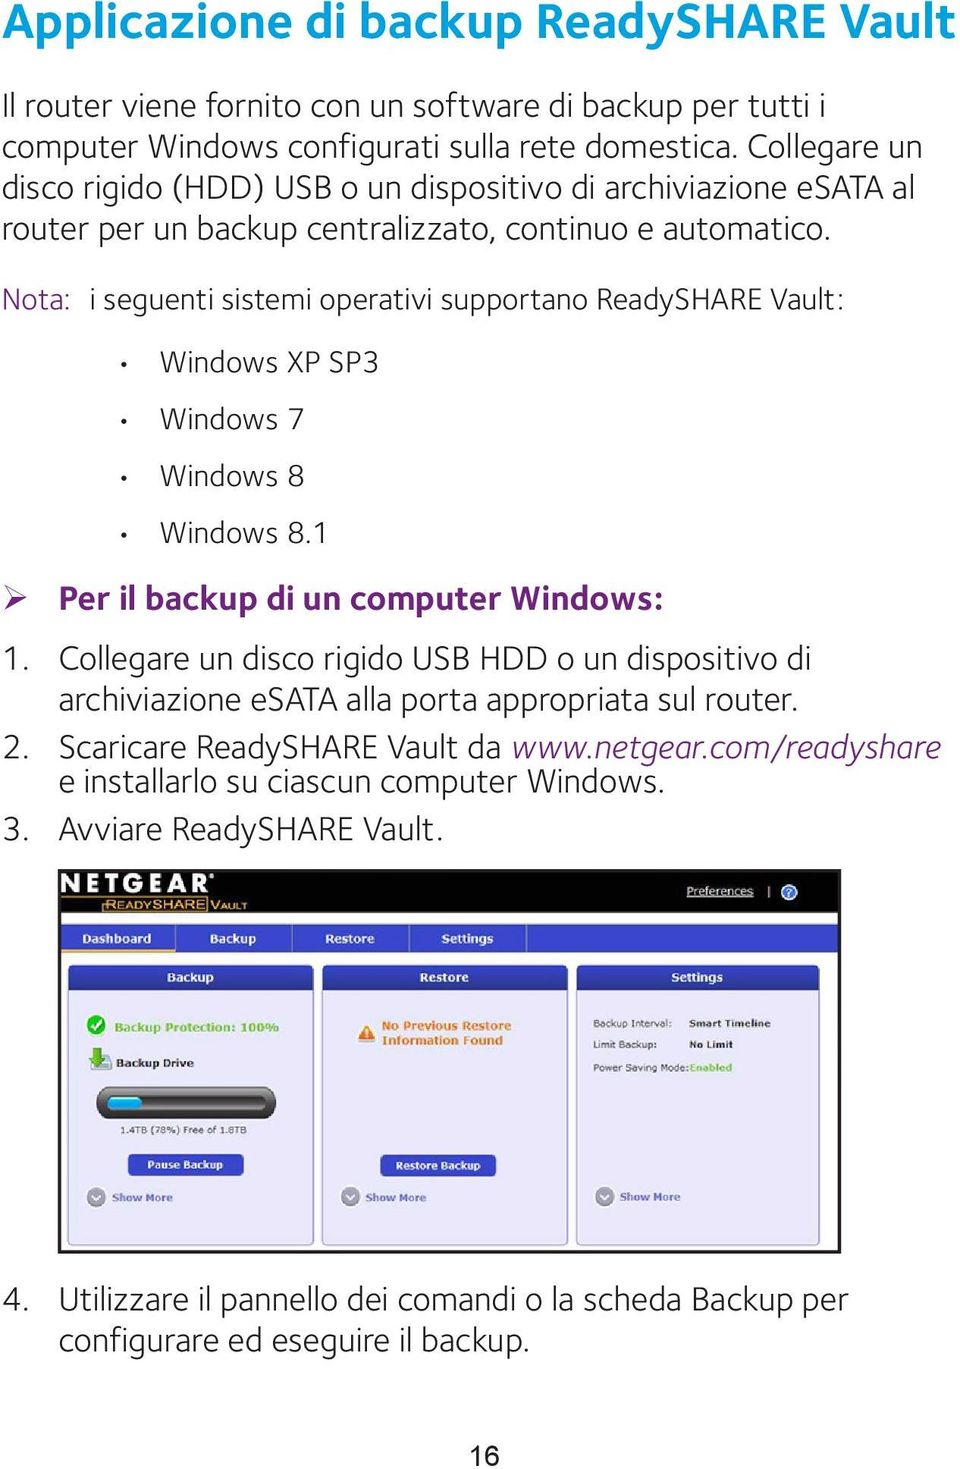 Nota: i seguenti sistemi operativi supportano ReadySHARE Vault: Windows XP SP3 Windows 7 Windows 8 Windows 8.1 ¾ Per il backup di un computer Windows: 1.